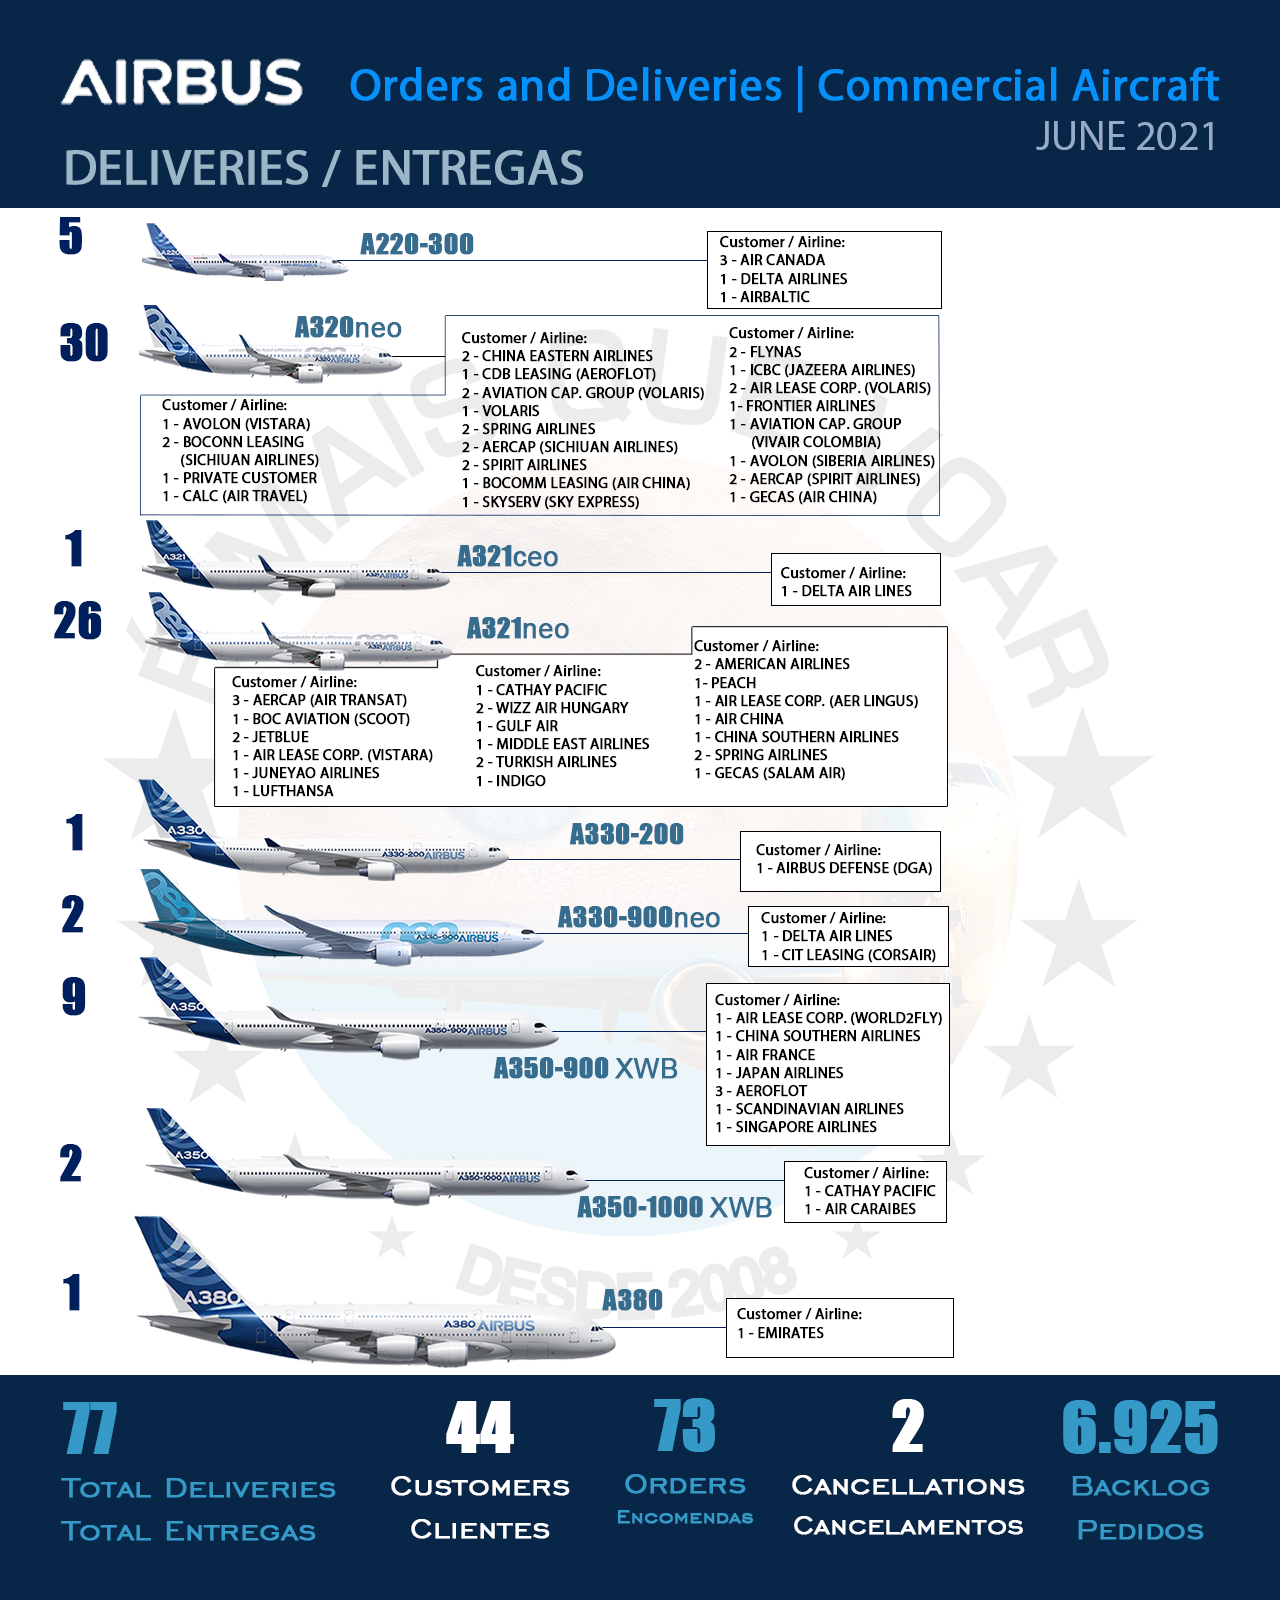 INFOGRAPHIC: Orders and Deliveries Airbus Commercial Aircraft – June 2021 | MORE THAN FLY